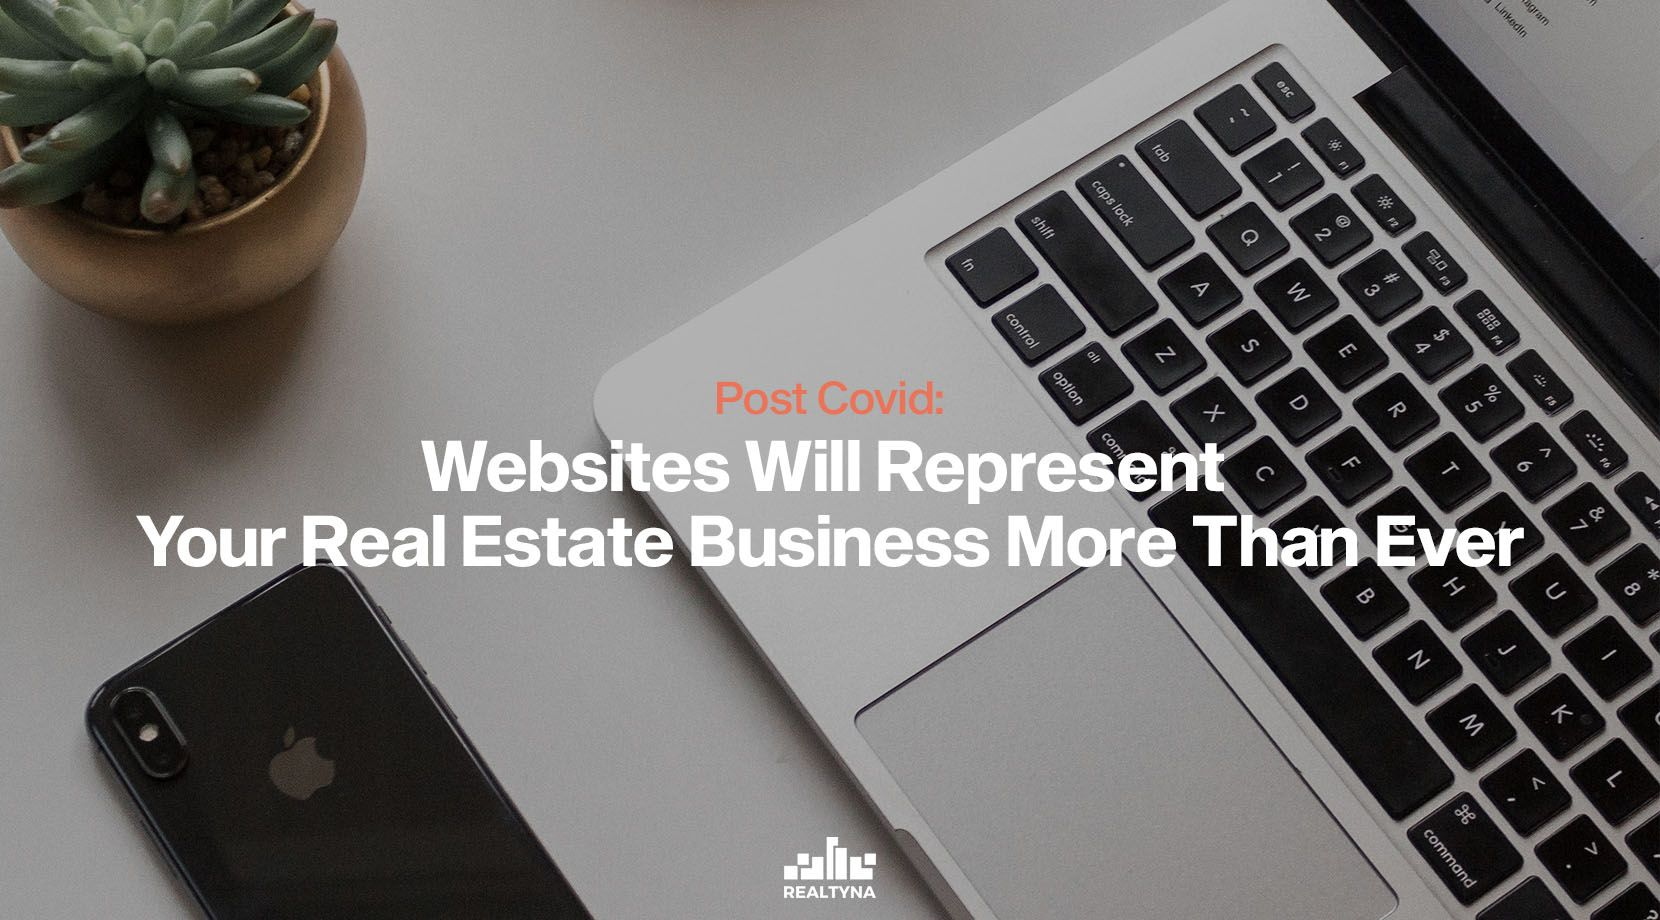 Post Covid: Websites Will Represent Your Real Estate Business More Than Ever